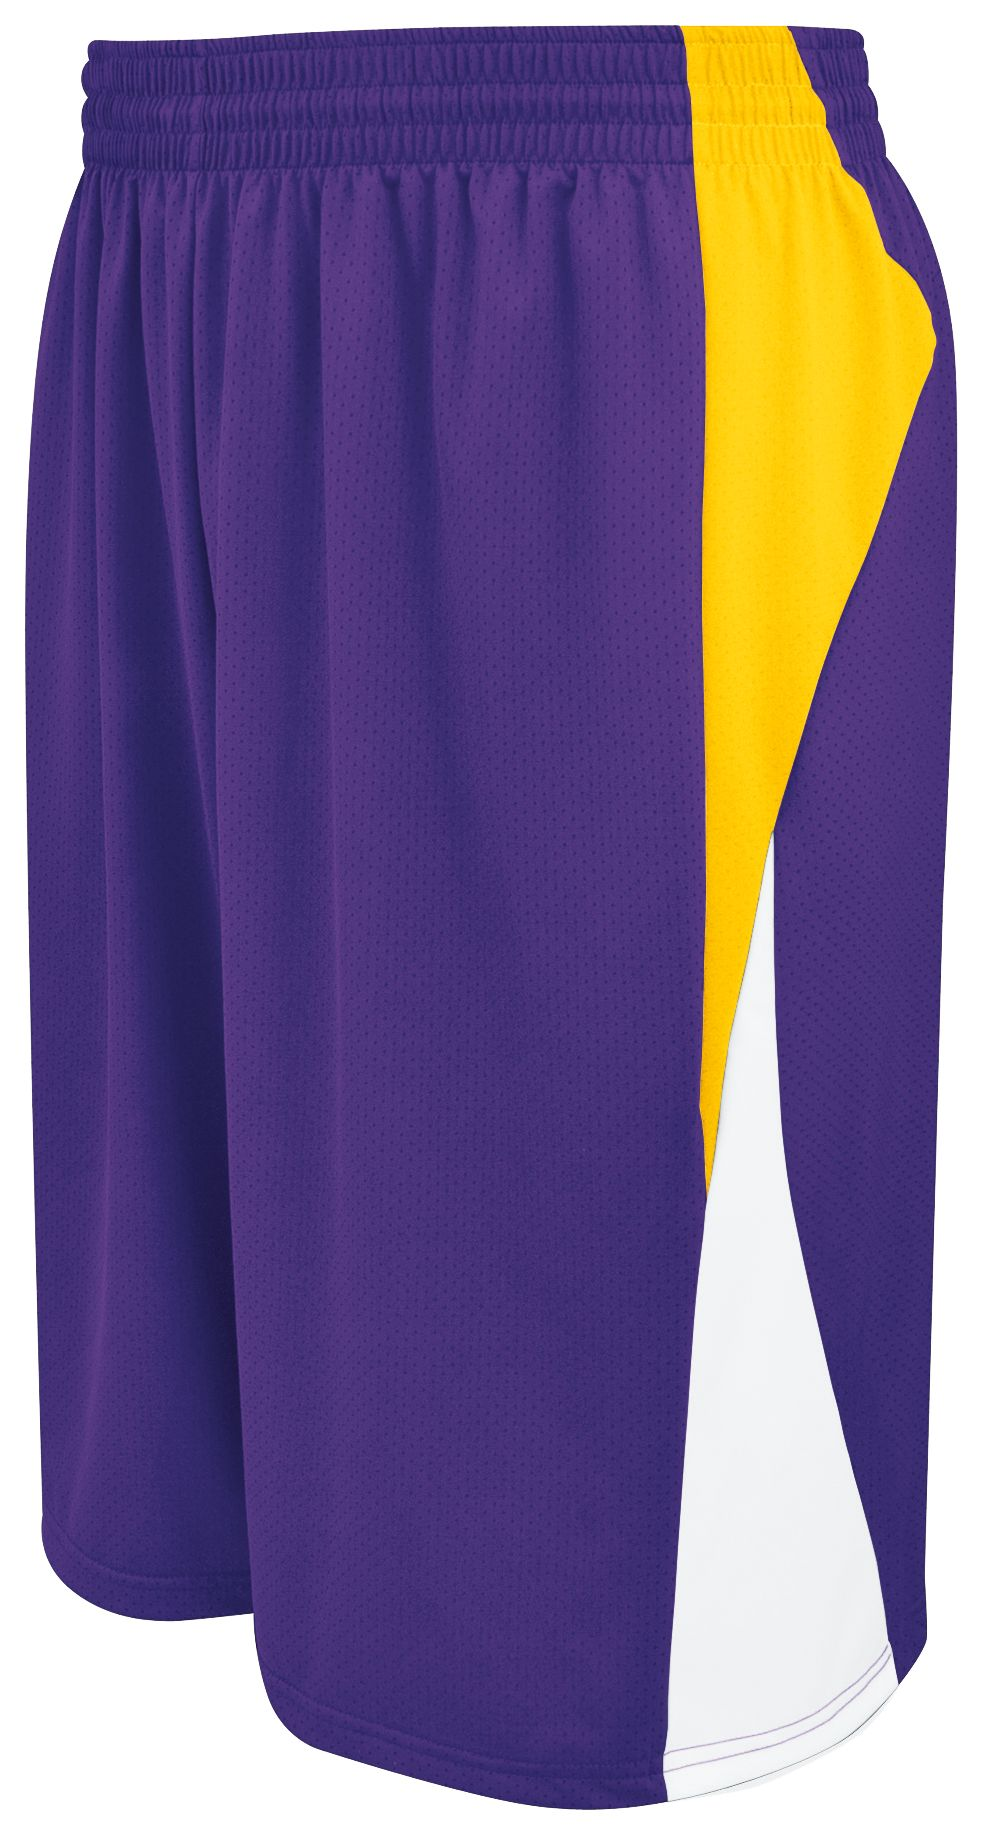 Campus Reversible Shorts - PURPLE/ATHLETIC GOLD/WHITE